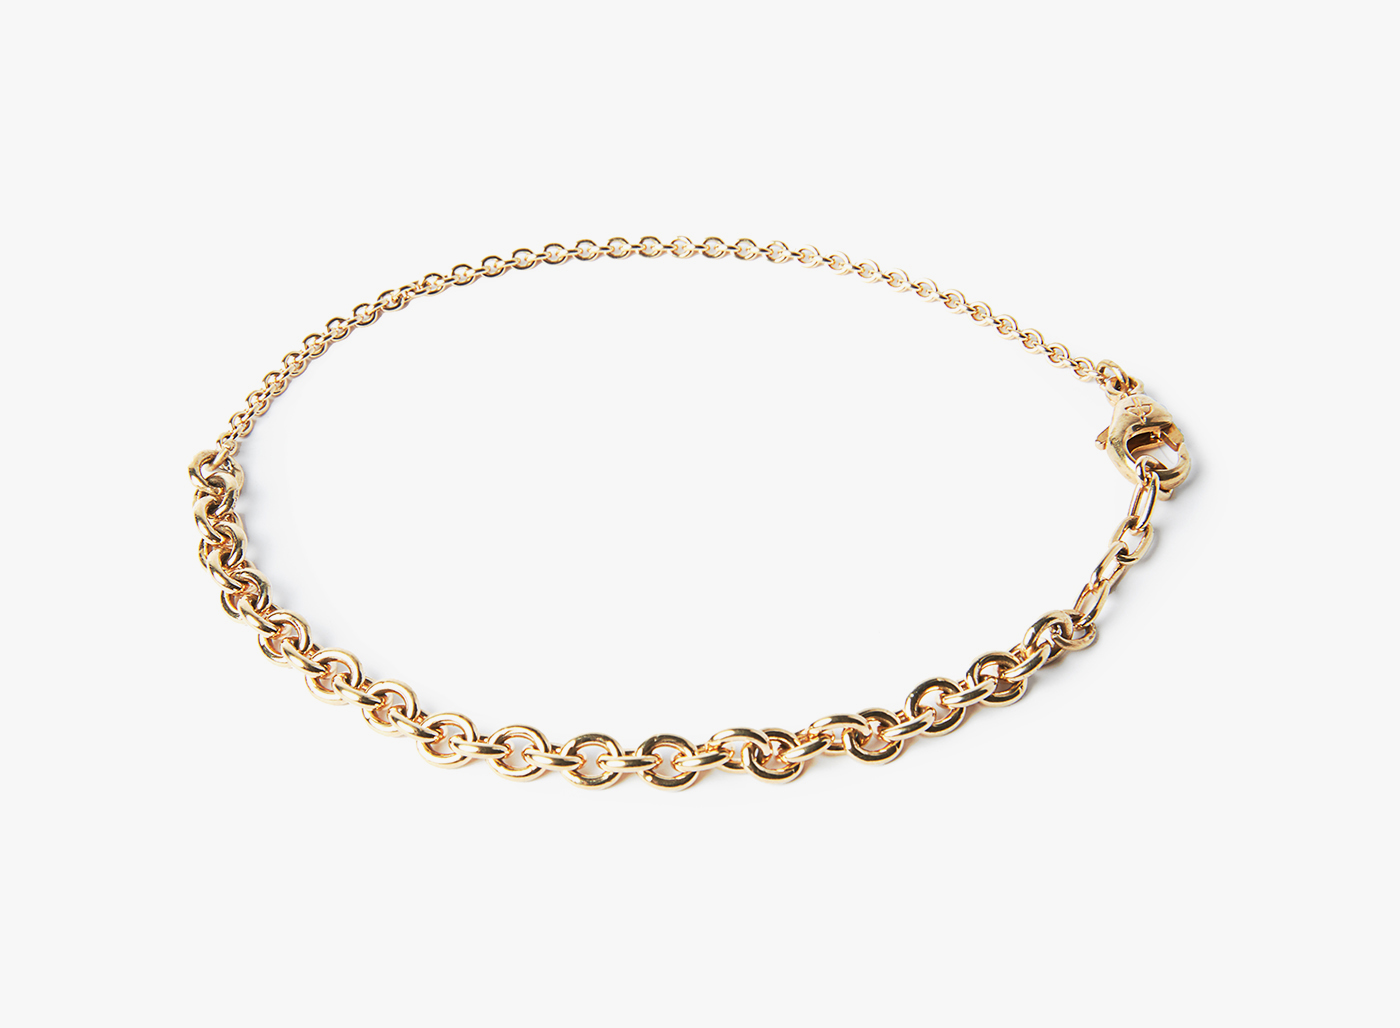 Image of 18k Gold Round Cable / Micro Cable Bracelet